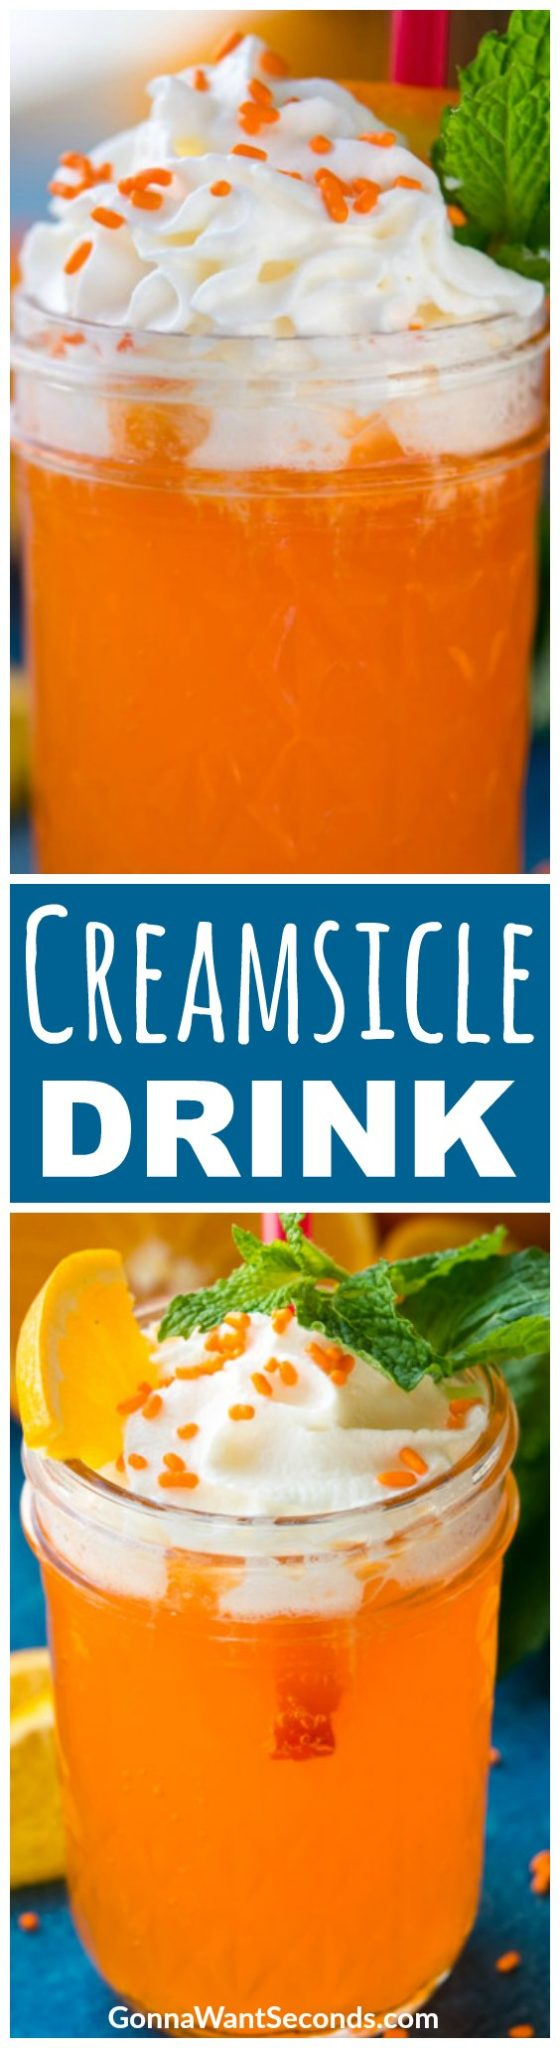 """You say """"creamsicle,"""" I say cocktails! This Creamsicle Drink recipe marries orange and vanilla cream with vodka to make one sweet bubbly beverage that's sure to conjure happy memories of forgotten summer treats. #Vodka #Alcohol #Parties #Cocktails #Orange #WhippedCream #Easy #Recipe #Creamsicle #Drink #DessertRecipes #Frozen #Summer #Fresh #Treats #Vanilla #Cream #Parties #Smoothie #Sweet #Bubbly #Spring"""